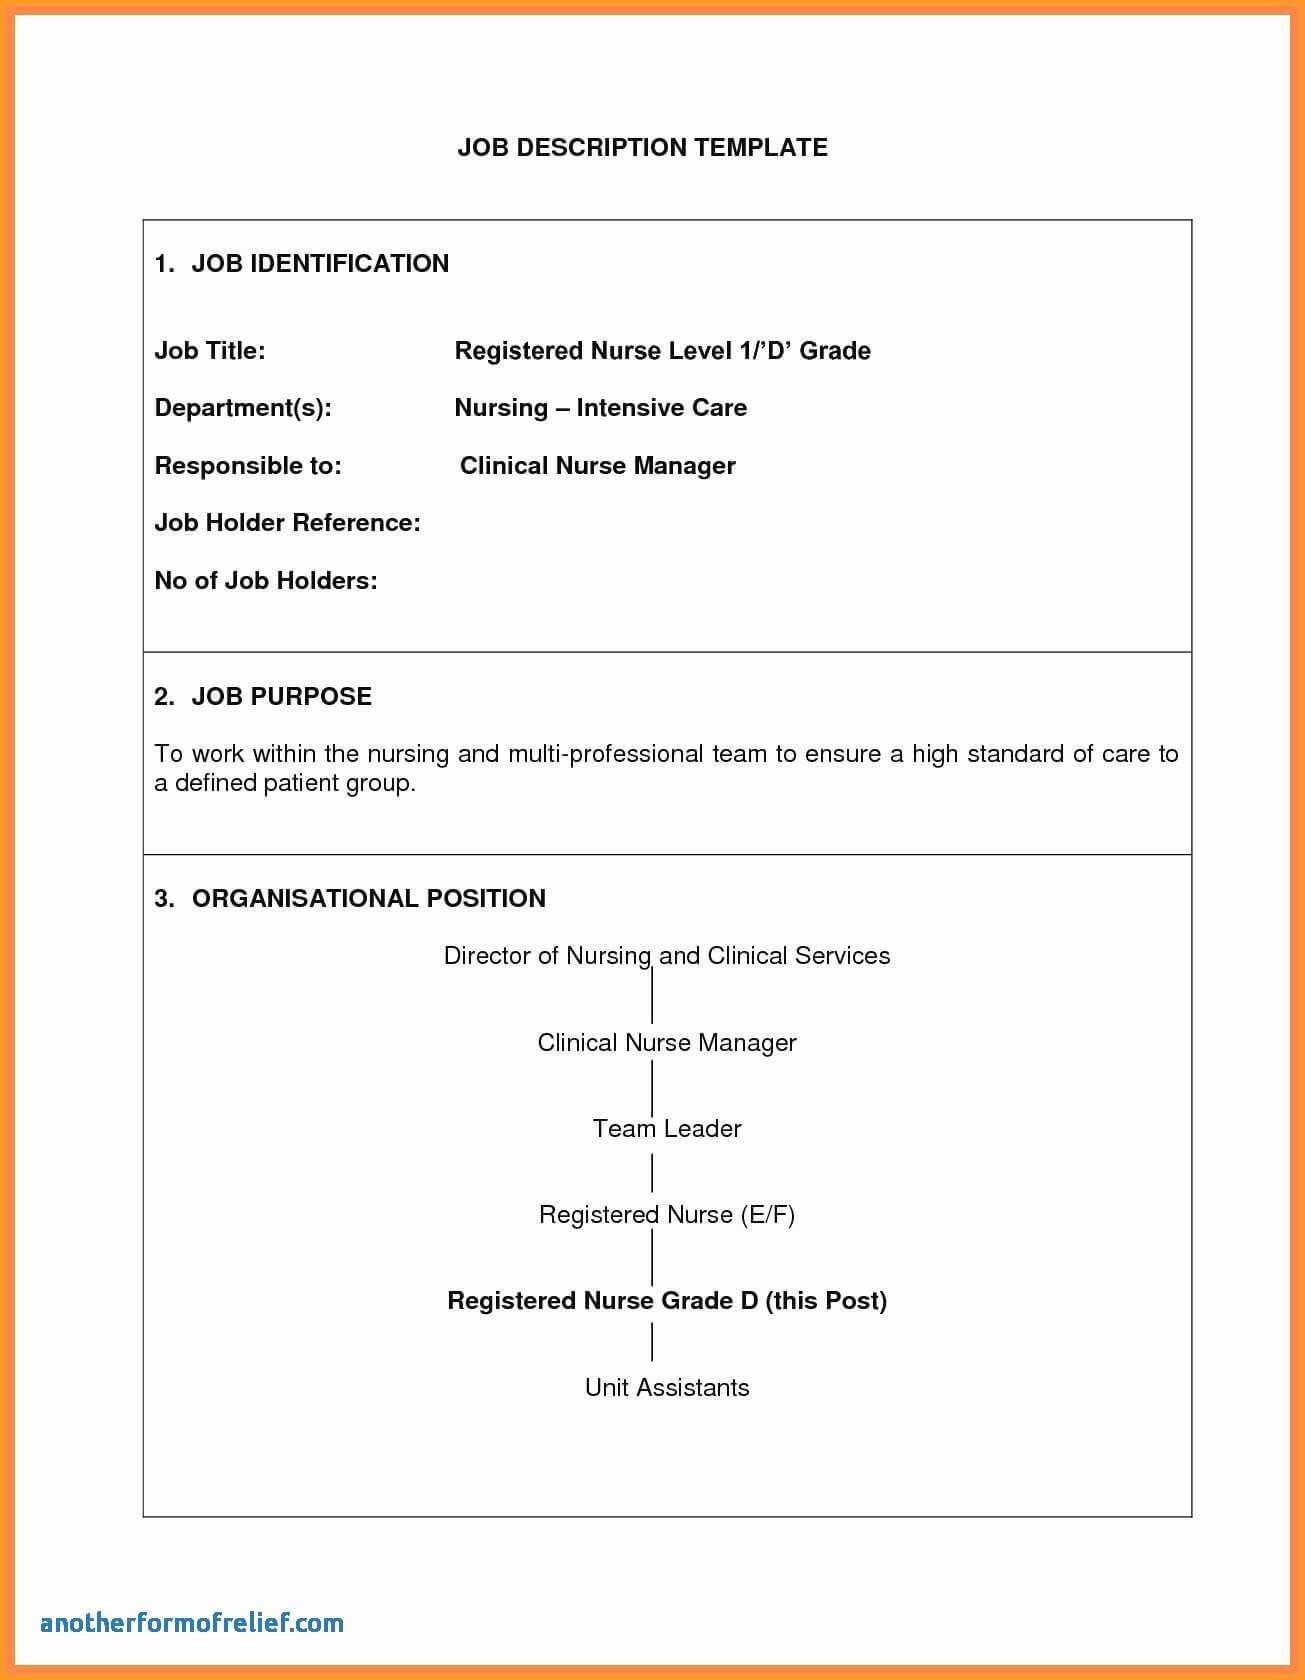 Treasurer Report Template Non Profit Elegant Sample Asurers Throughout Treasurer's Report Agm Template